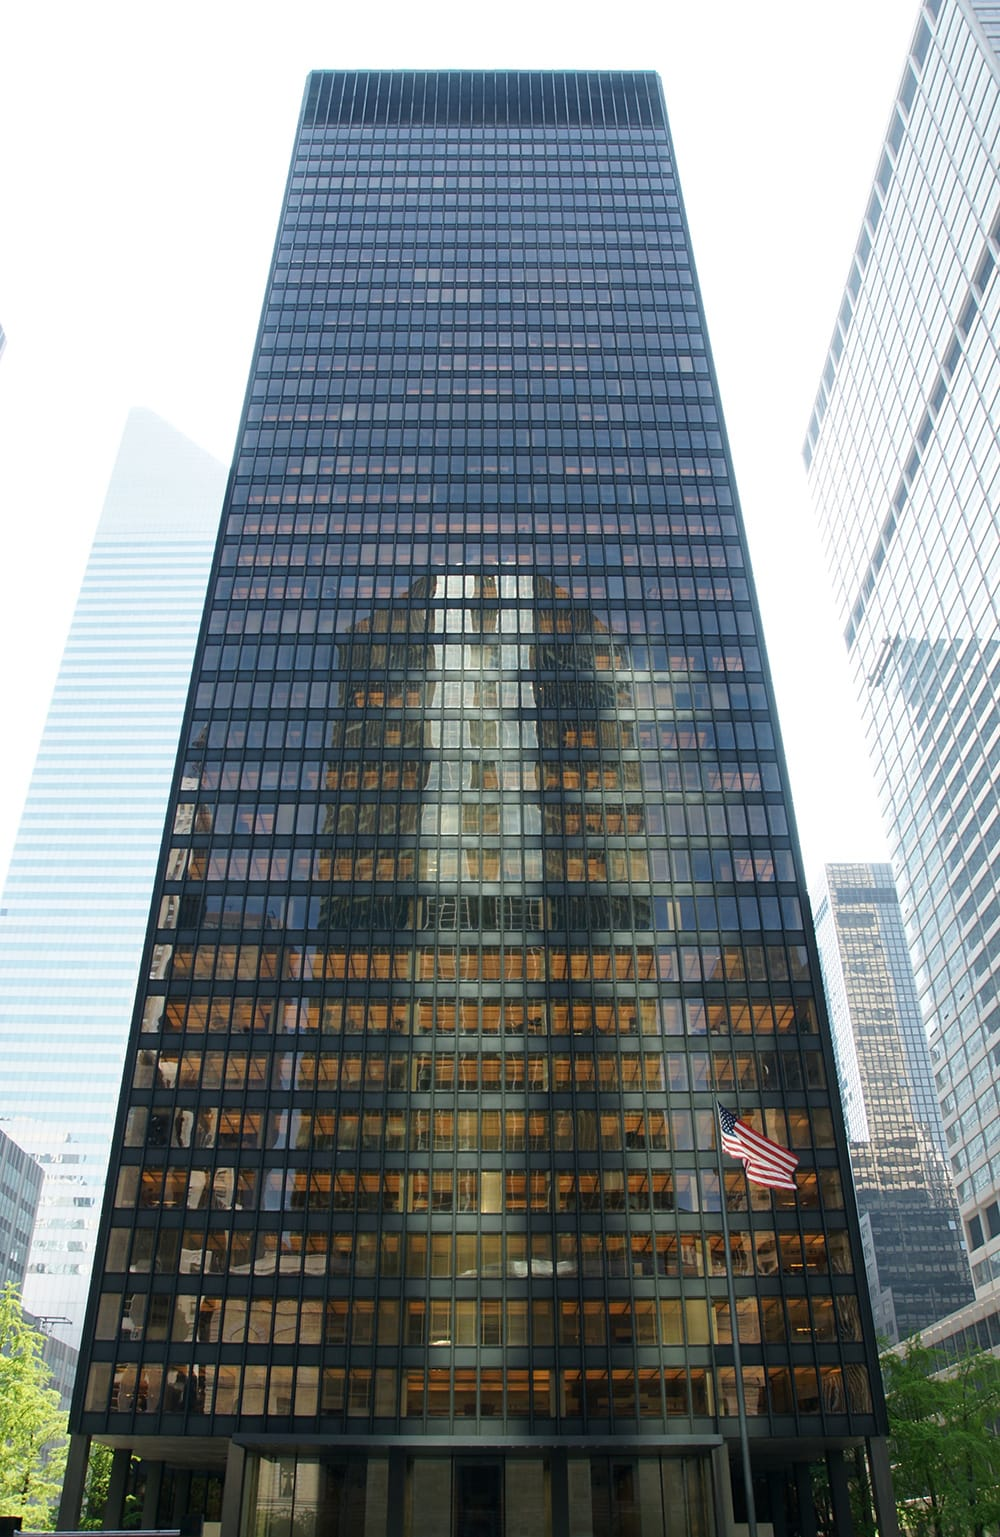 The Seagram building, NY